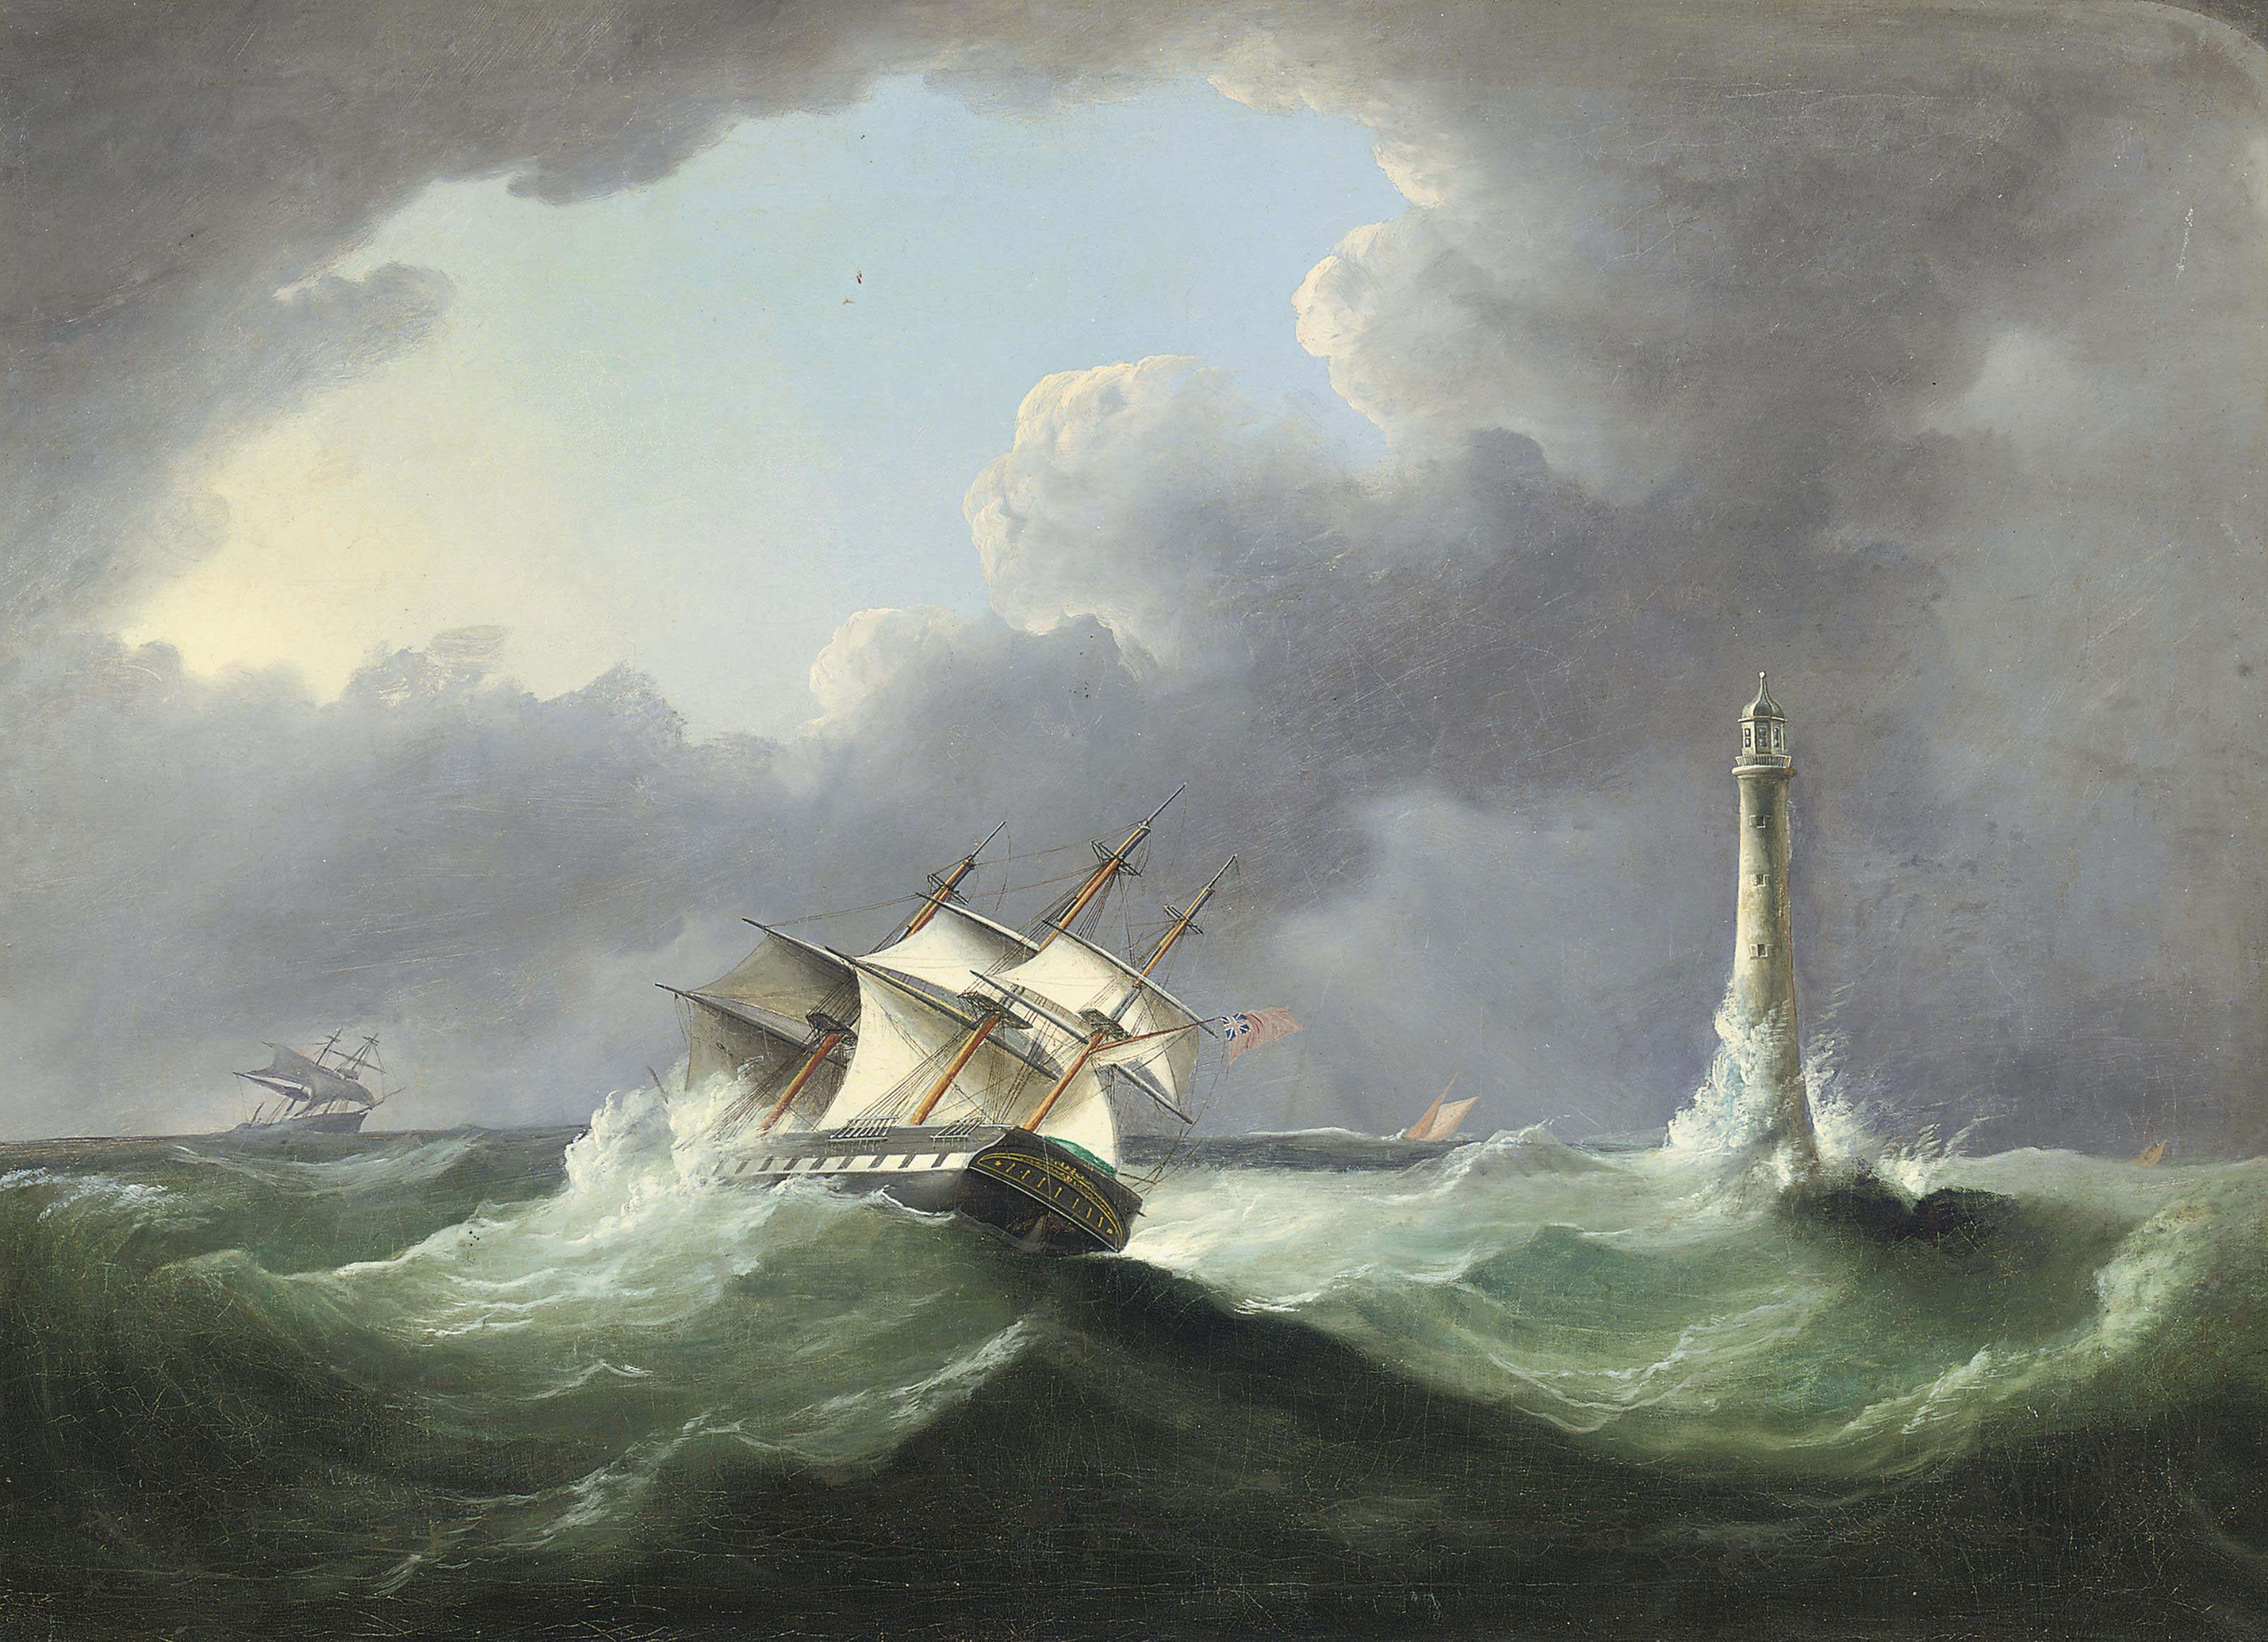 A merchantman reefed-down and heeling in heavy seas off the Eddystone lighthouse